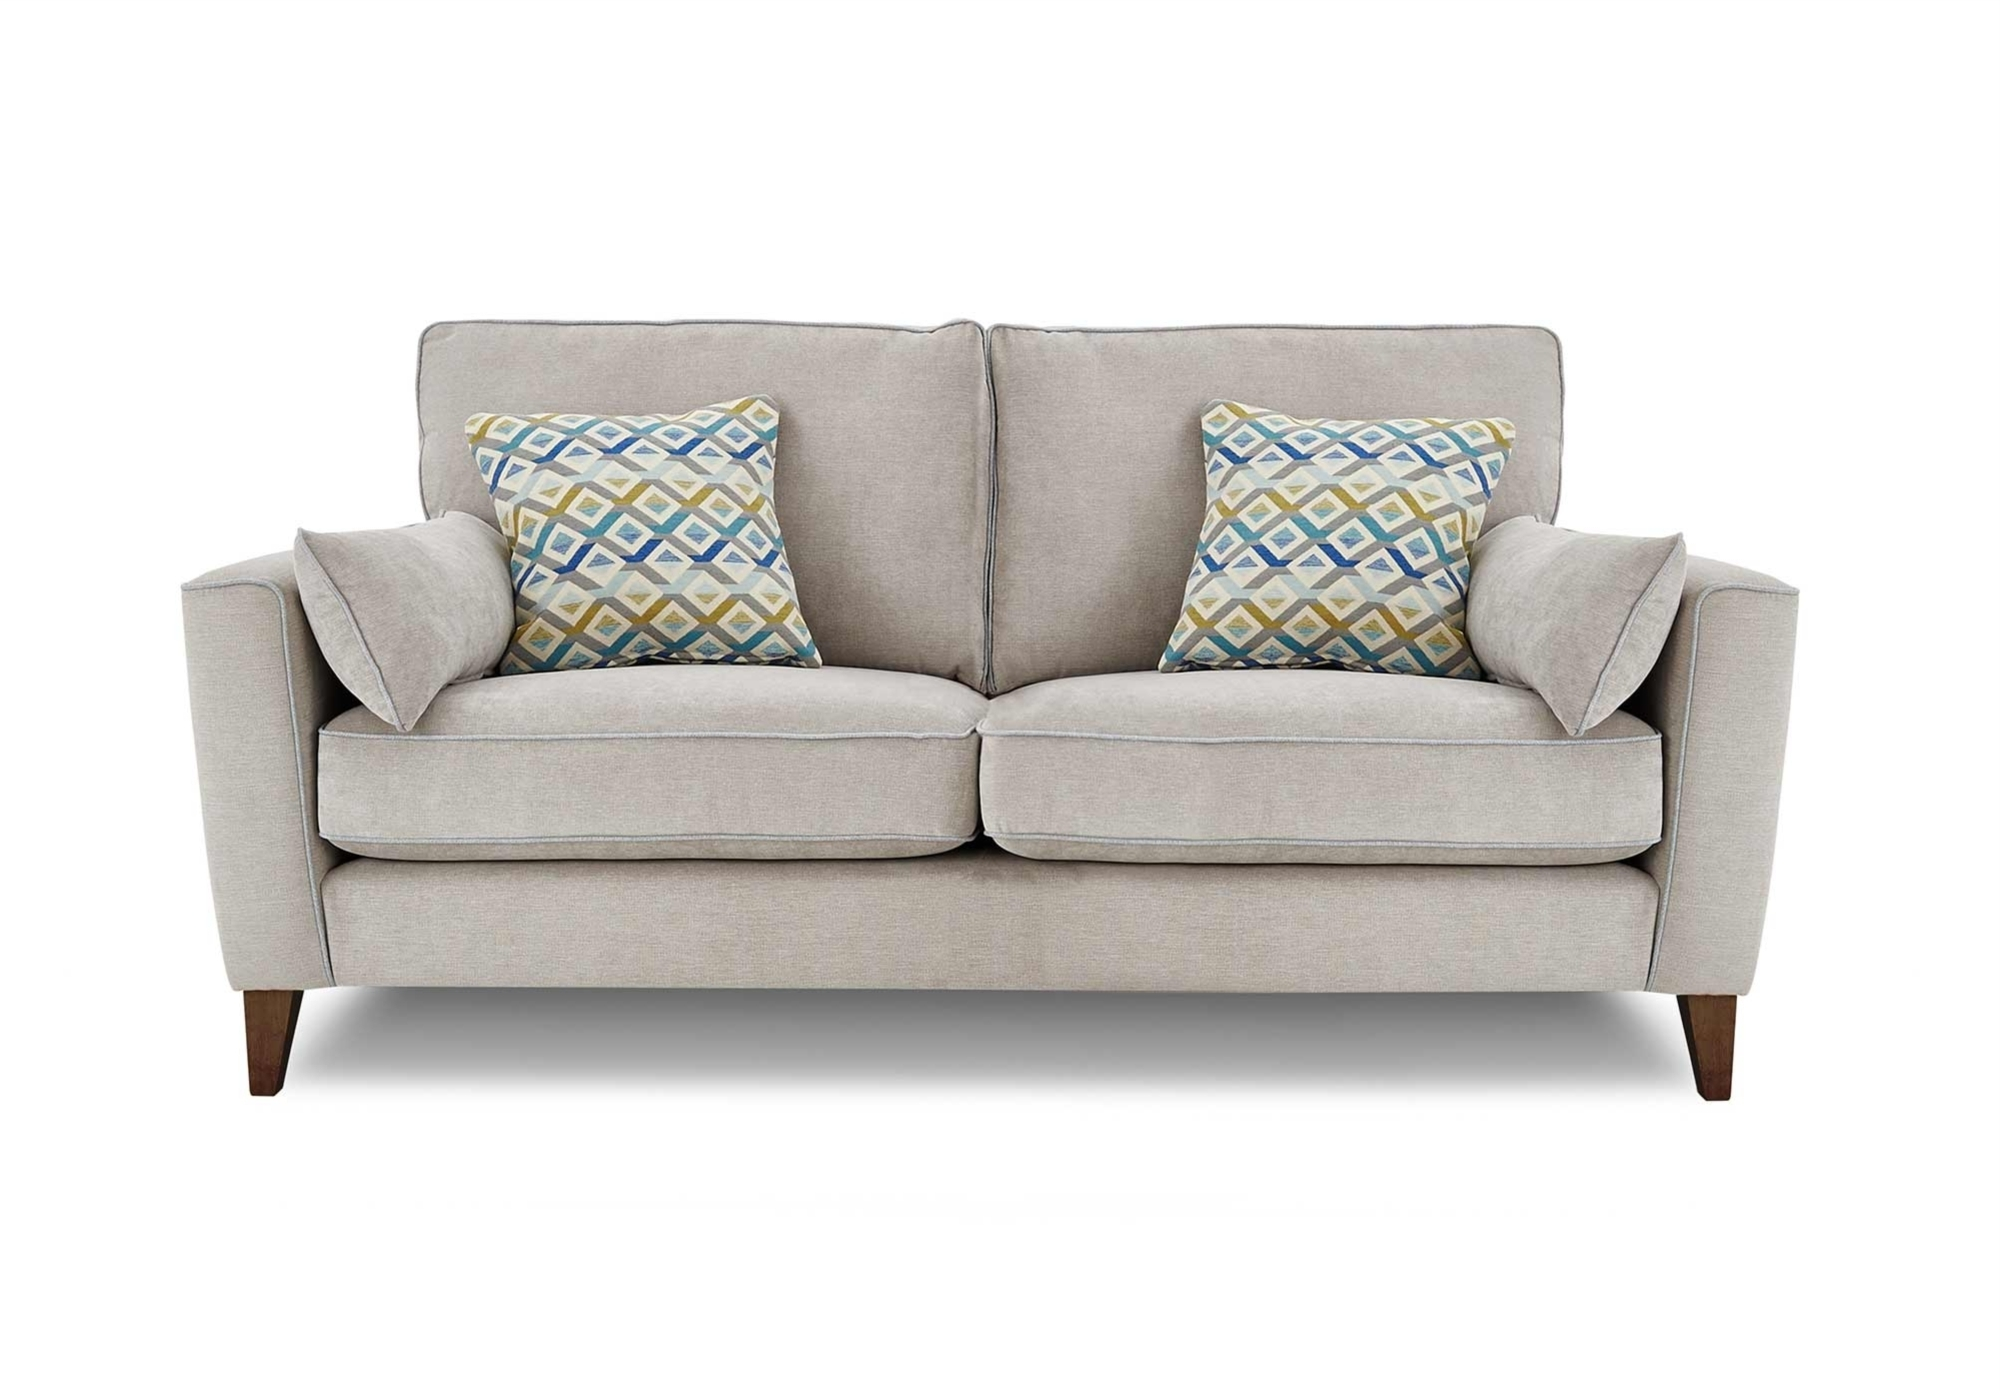 Perfect Small 2 Seater Sofa 61 On Modern Sofa Inspiration With With Regard To Well Known 2 Seater Sofas (View 13 of 20)